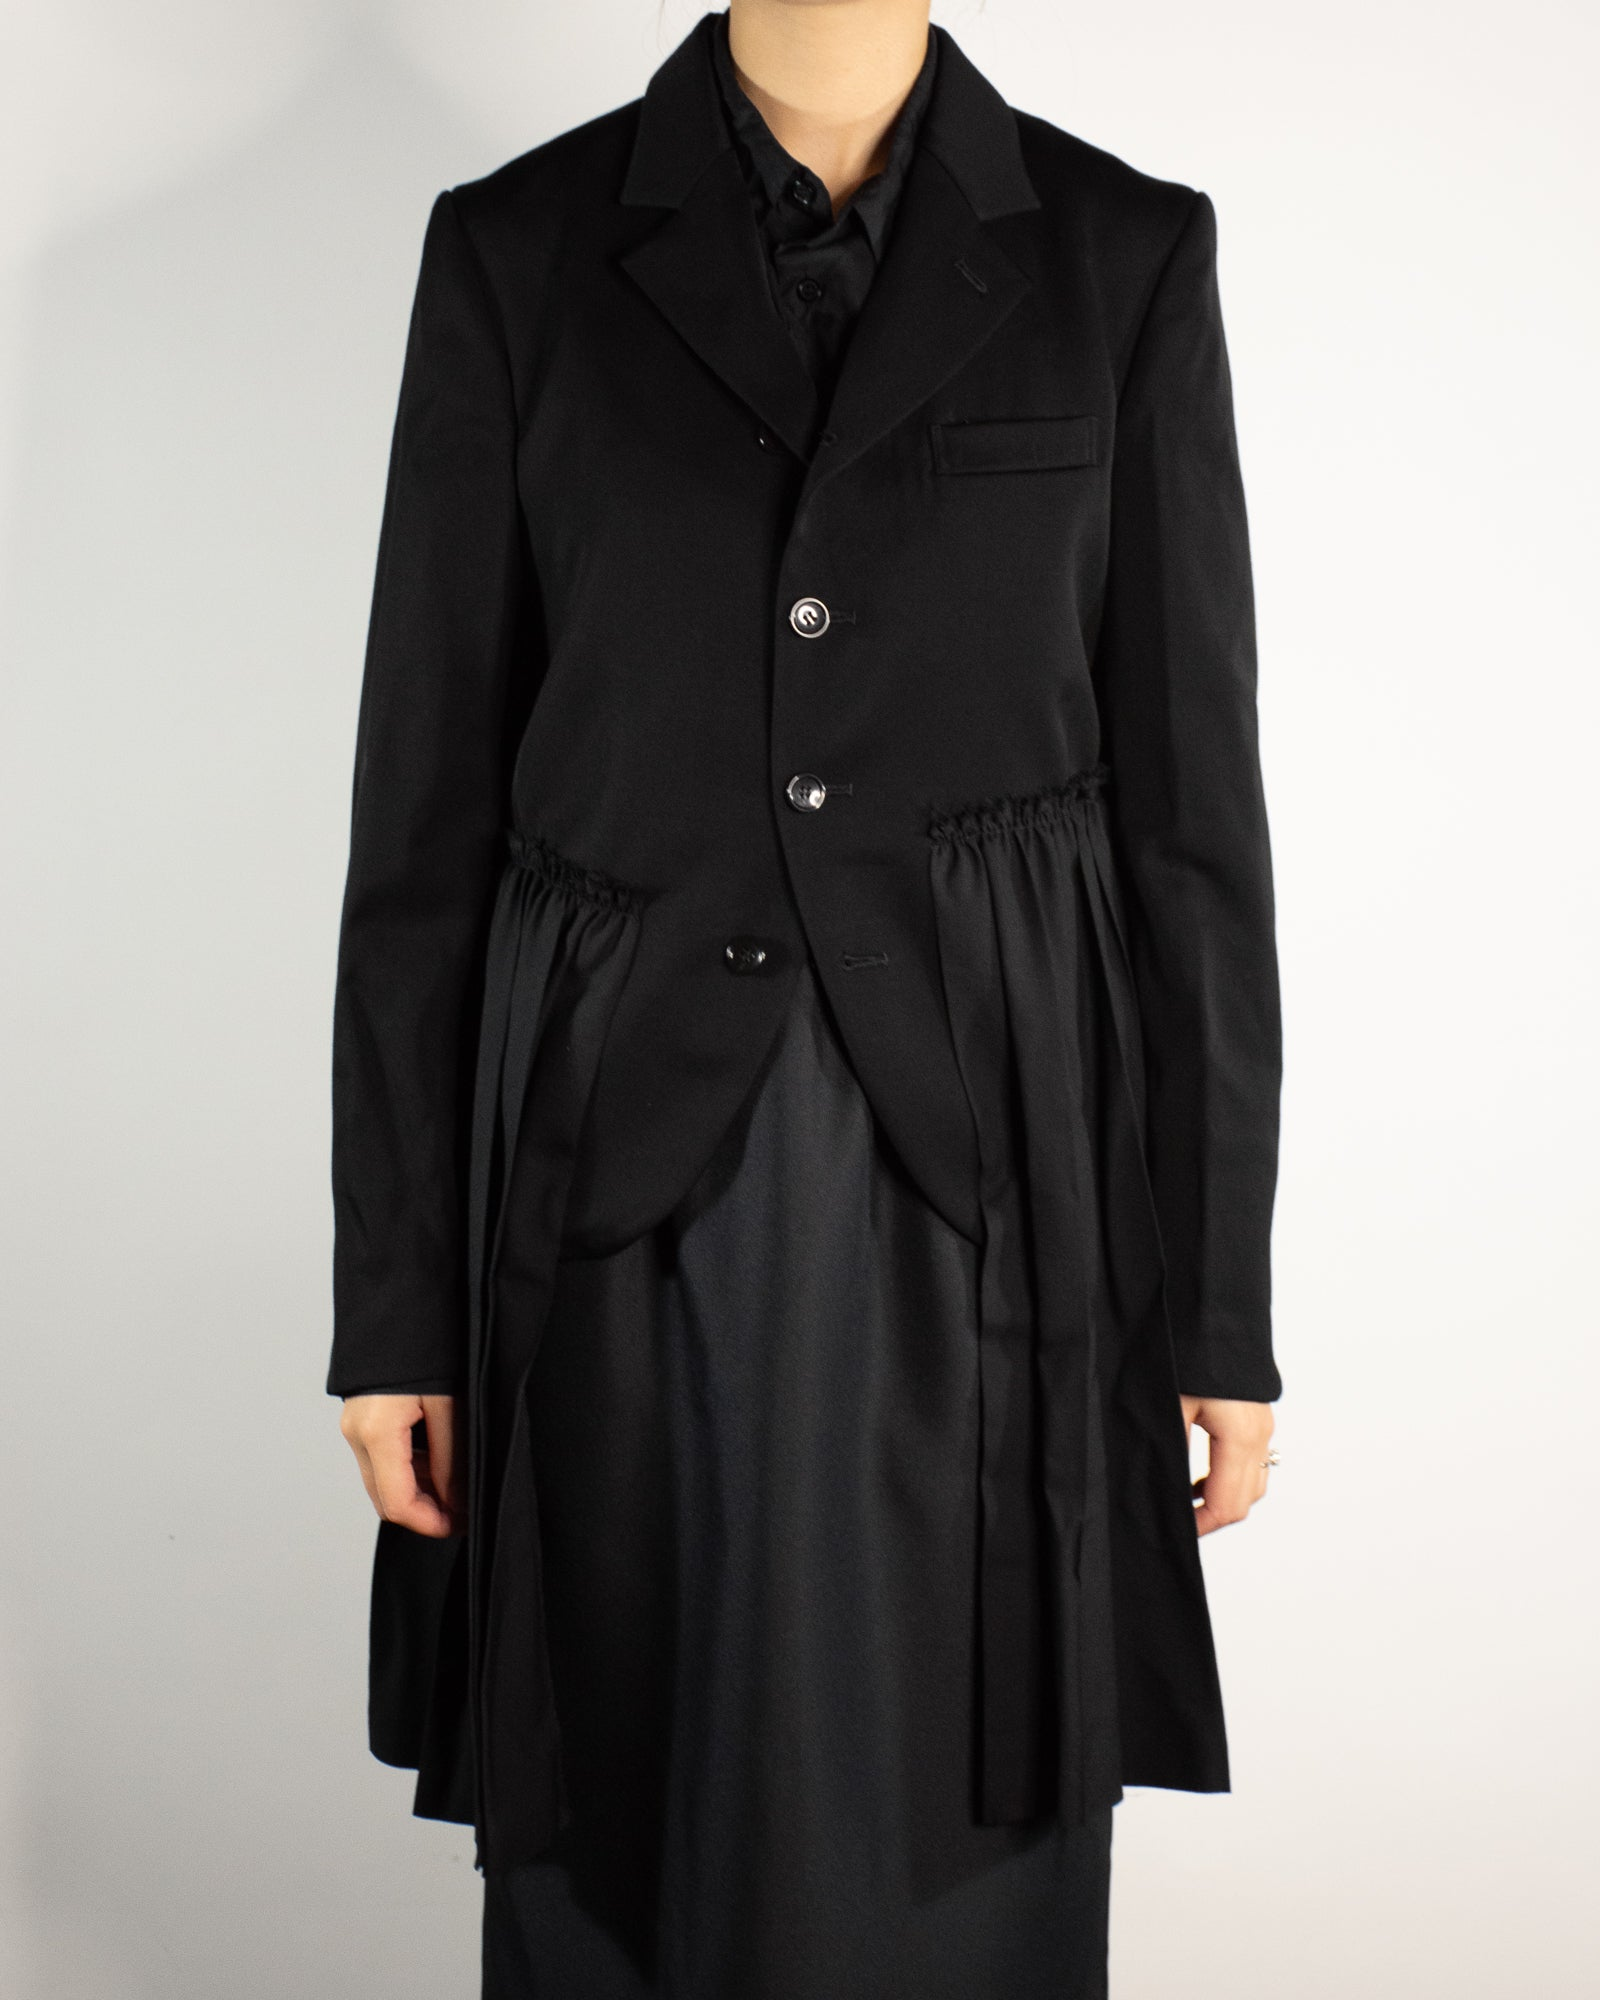 CDG BLACK Tailored Jacket with Attached Pleated Skirt